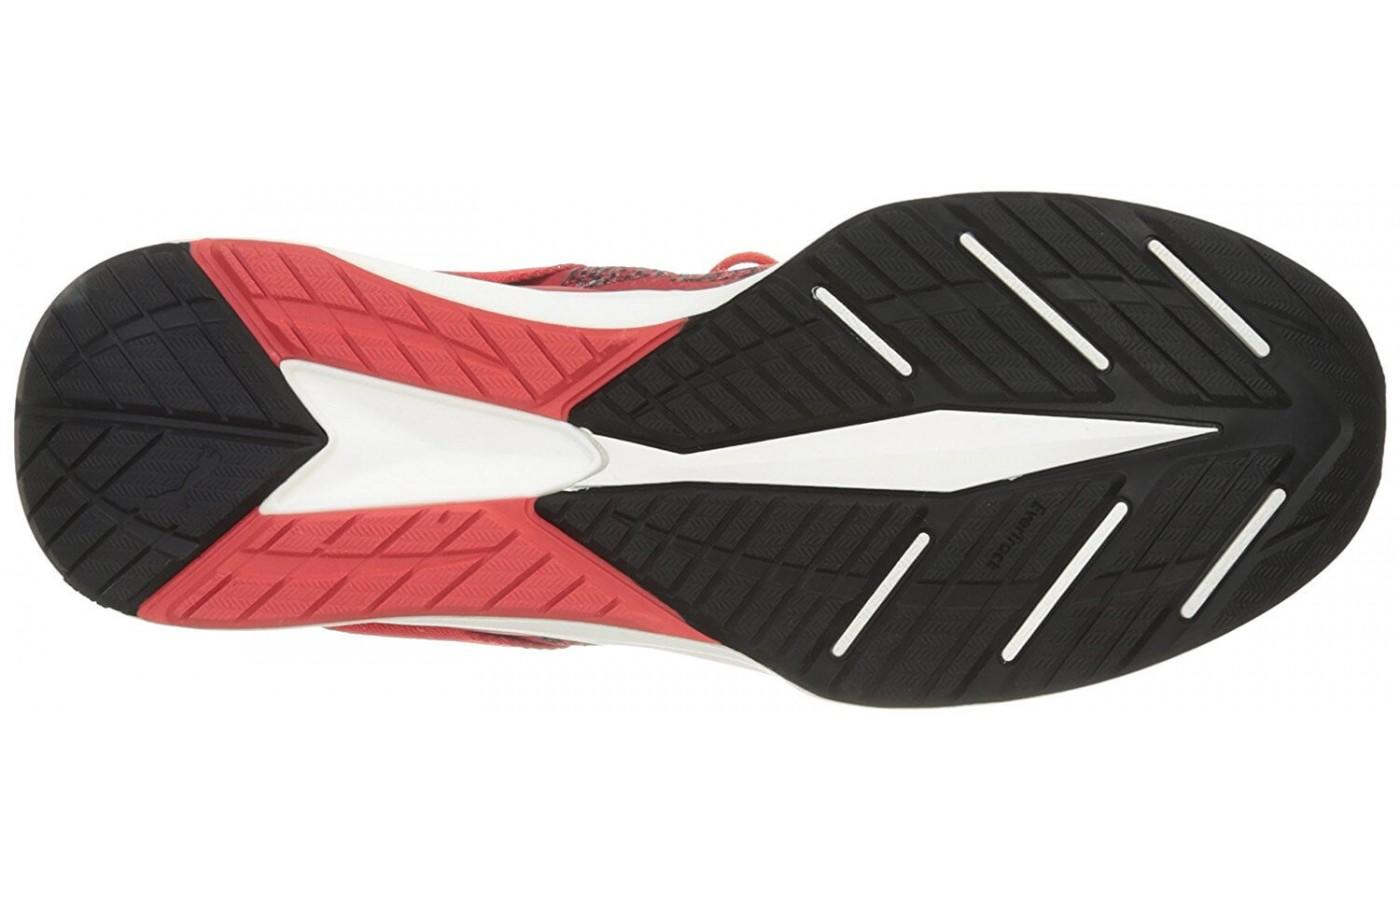 the outsole of the Puma Ignite evoKnit is outfitted with numerous flex grooves